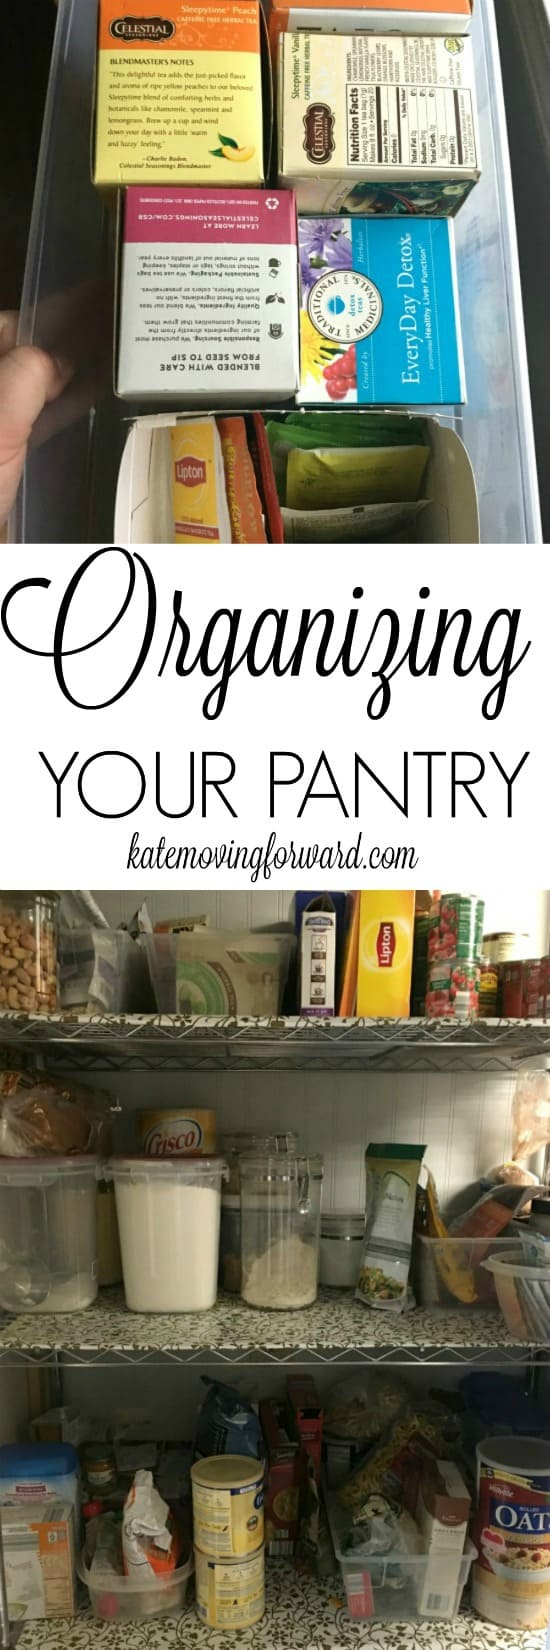 Pantry Organization - Organize Pantry - Organize Kitchen  - Pantry Help - Pantry Organization Ideas